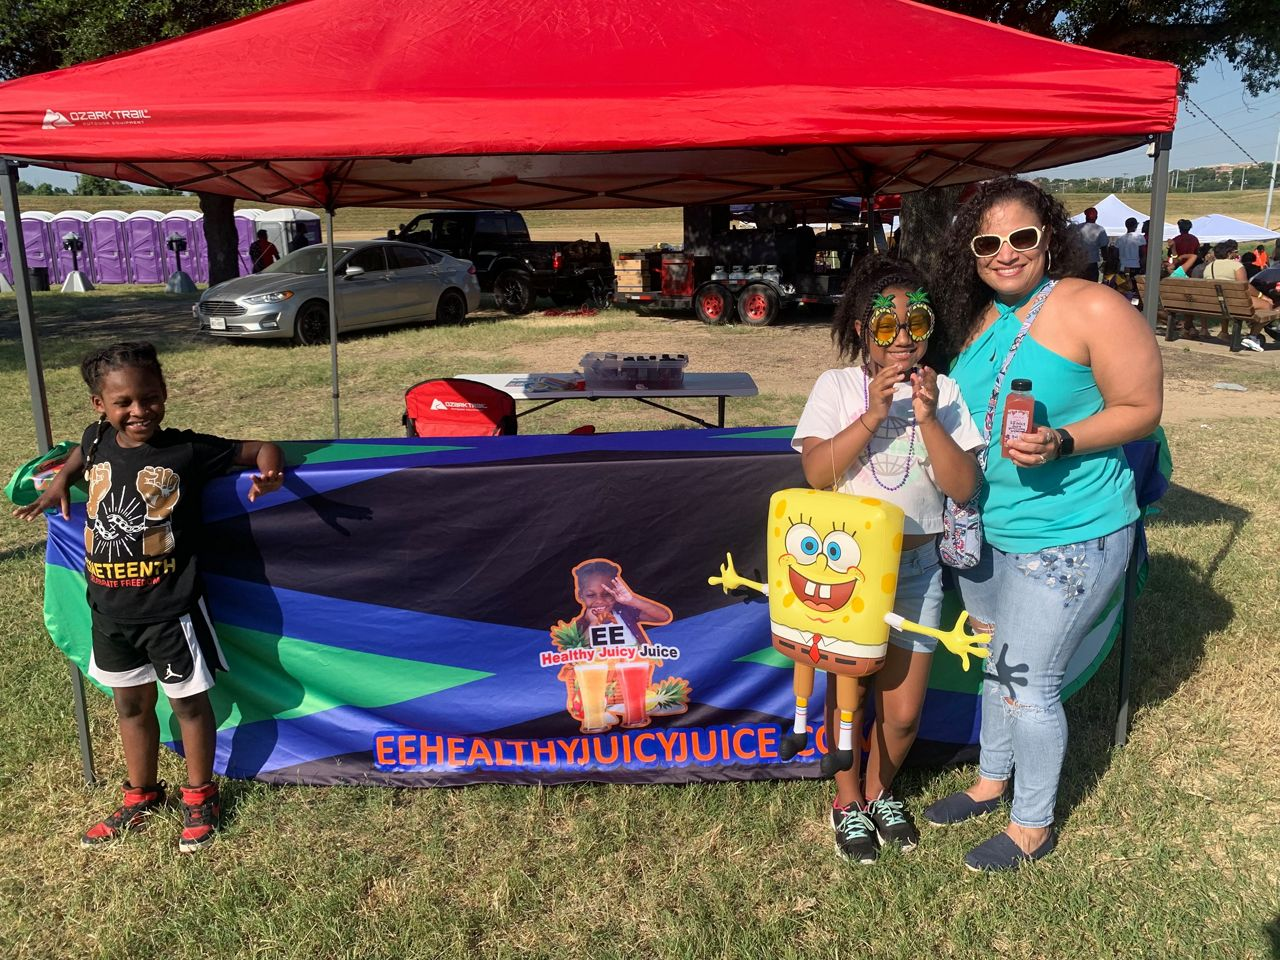 Pictured is E'Syntheis Chambers with two customers posing near his juice stand at a Juneteenth event in Fort Worth. At 7-years-old Chambers is the CEO of EE Healthy Juicy Juice, an organic juicing business he and his mother Roshanda White operate based in DeSoto, Texas. Credit, Lupe Zapata